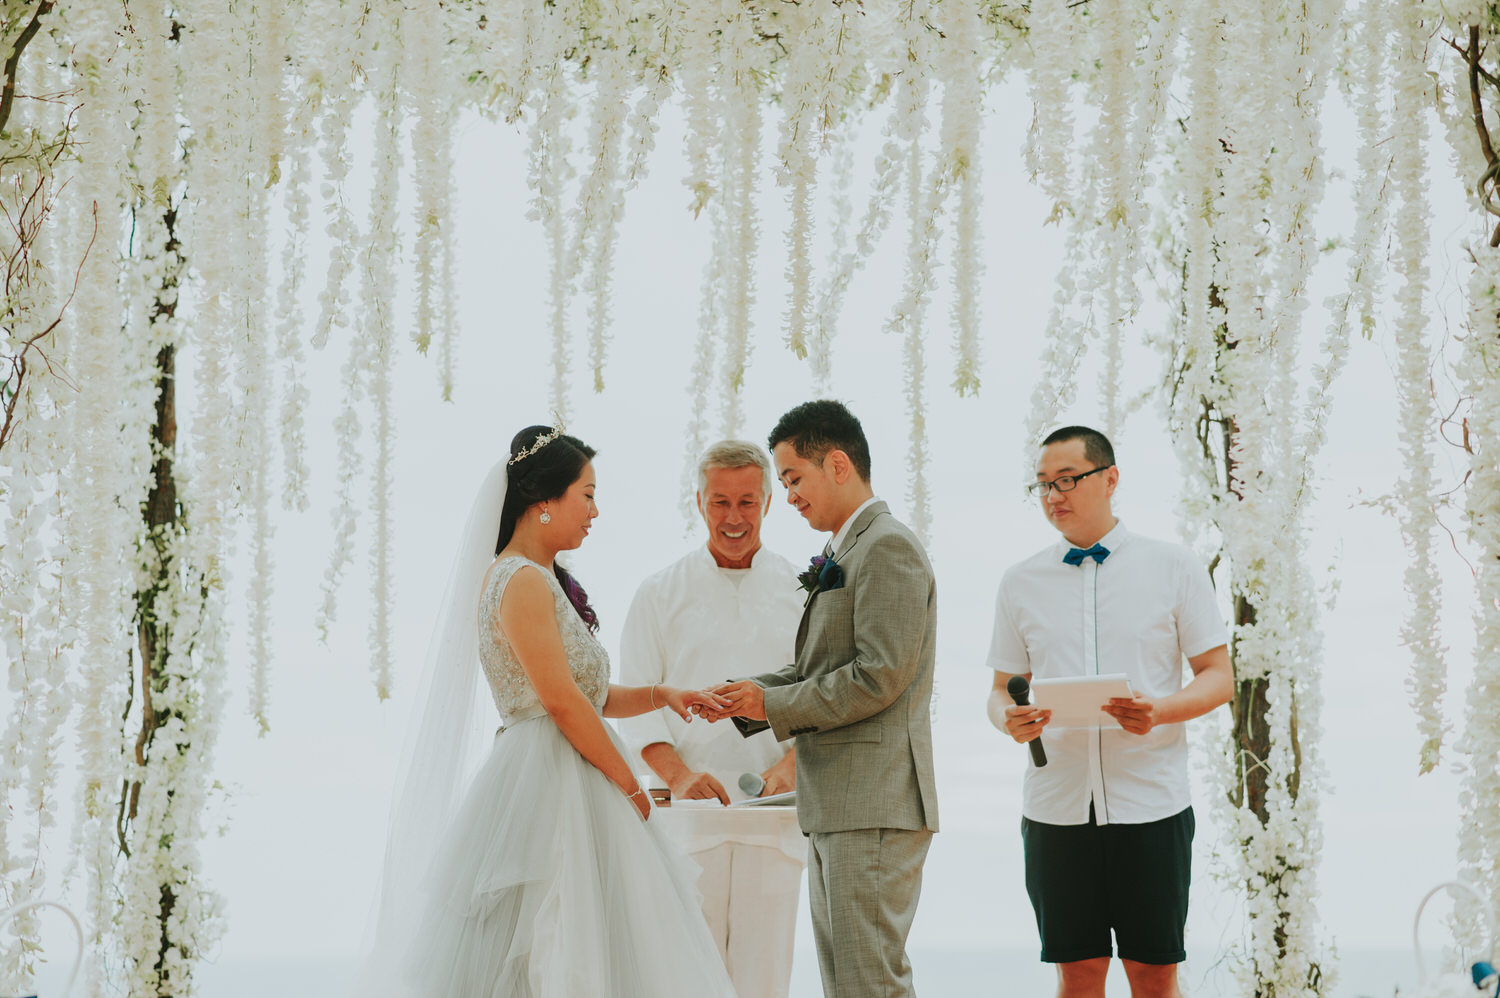 phuket wedding-diktatphotography-alex&andy wedding-103